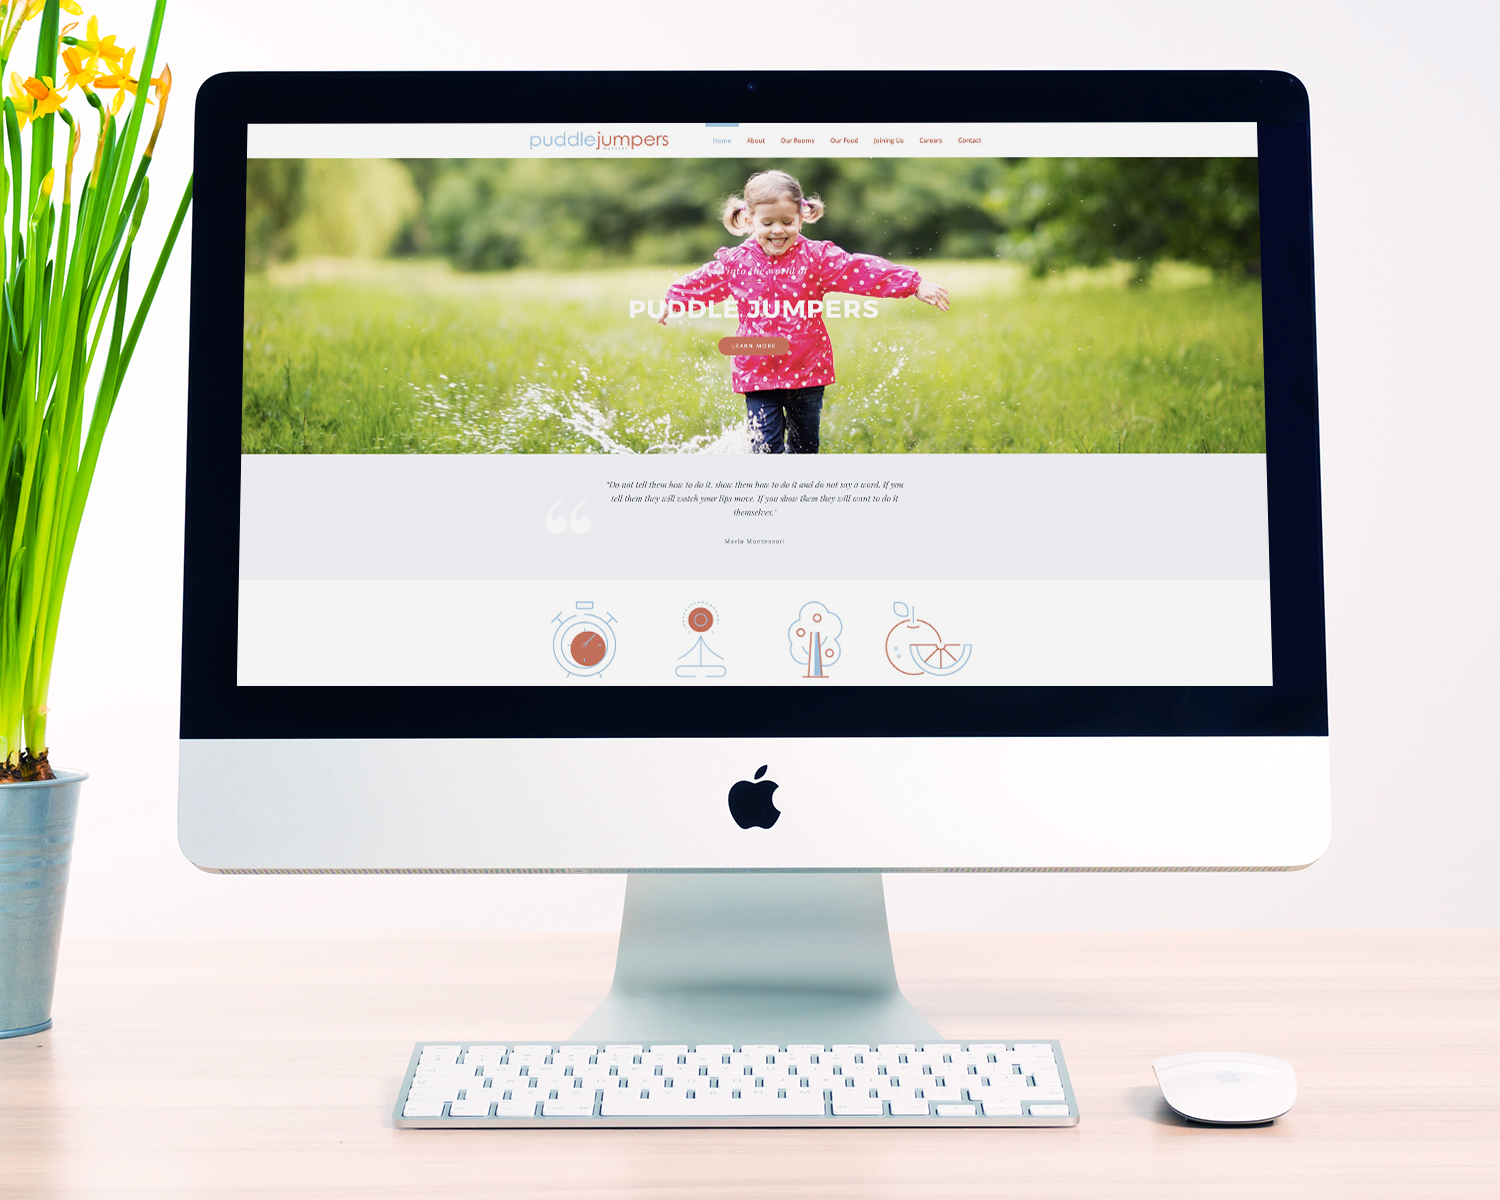 Nursery-Website-Design-for-Puddle-Jumpers-Nursery-by-Three-Girls-Media